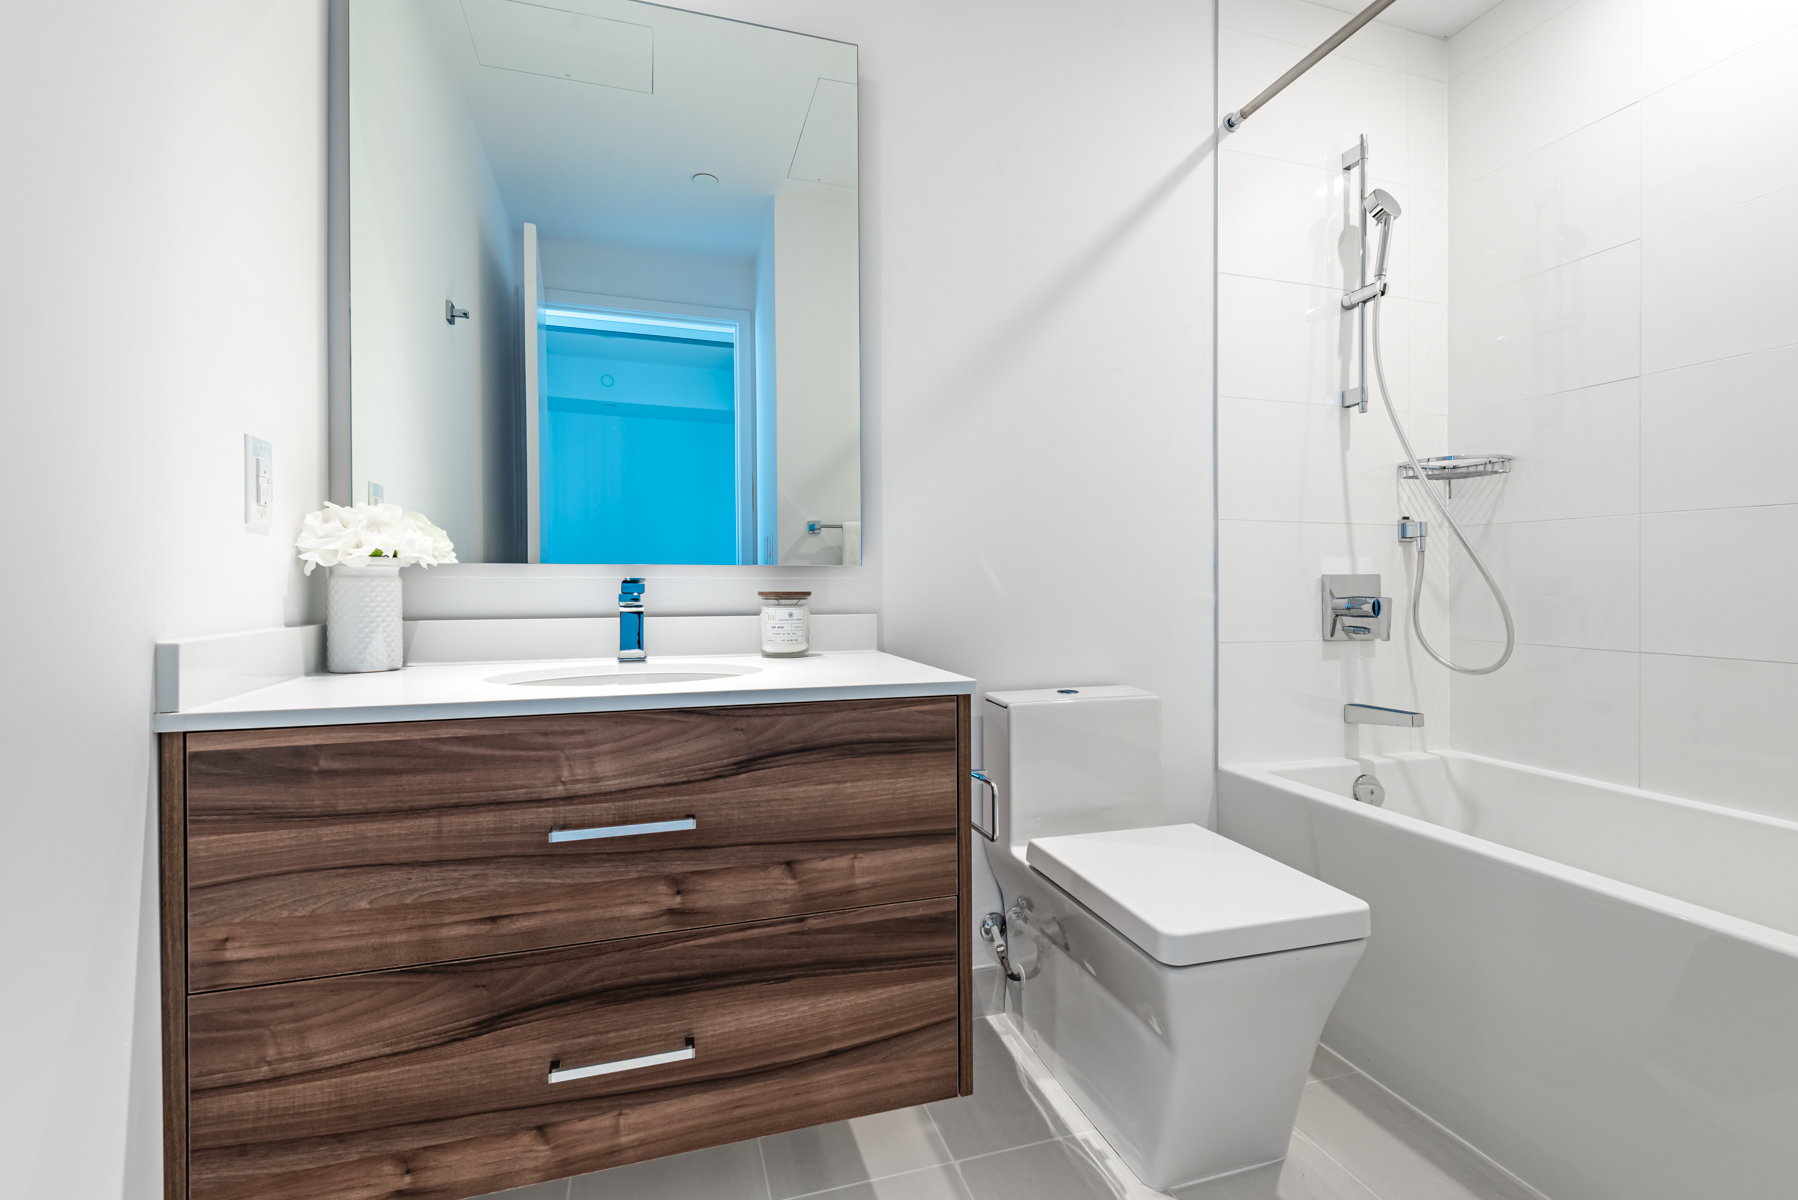 488 University Ave Unit 3102 4-piece bath with gray tiles and dark brown drawers.